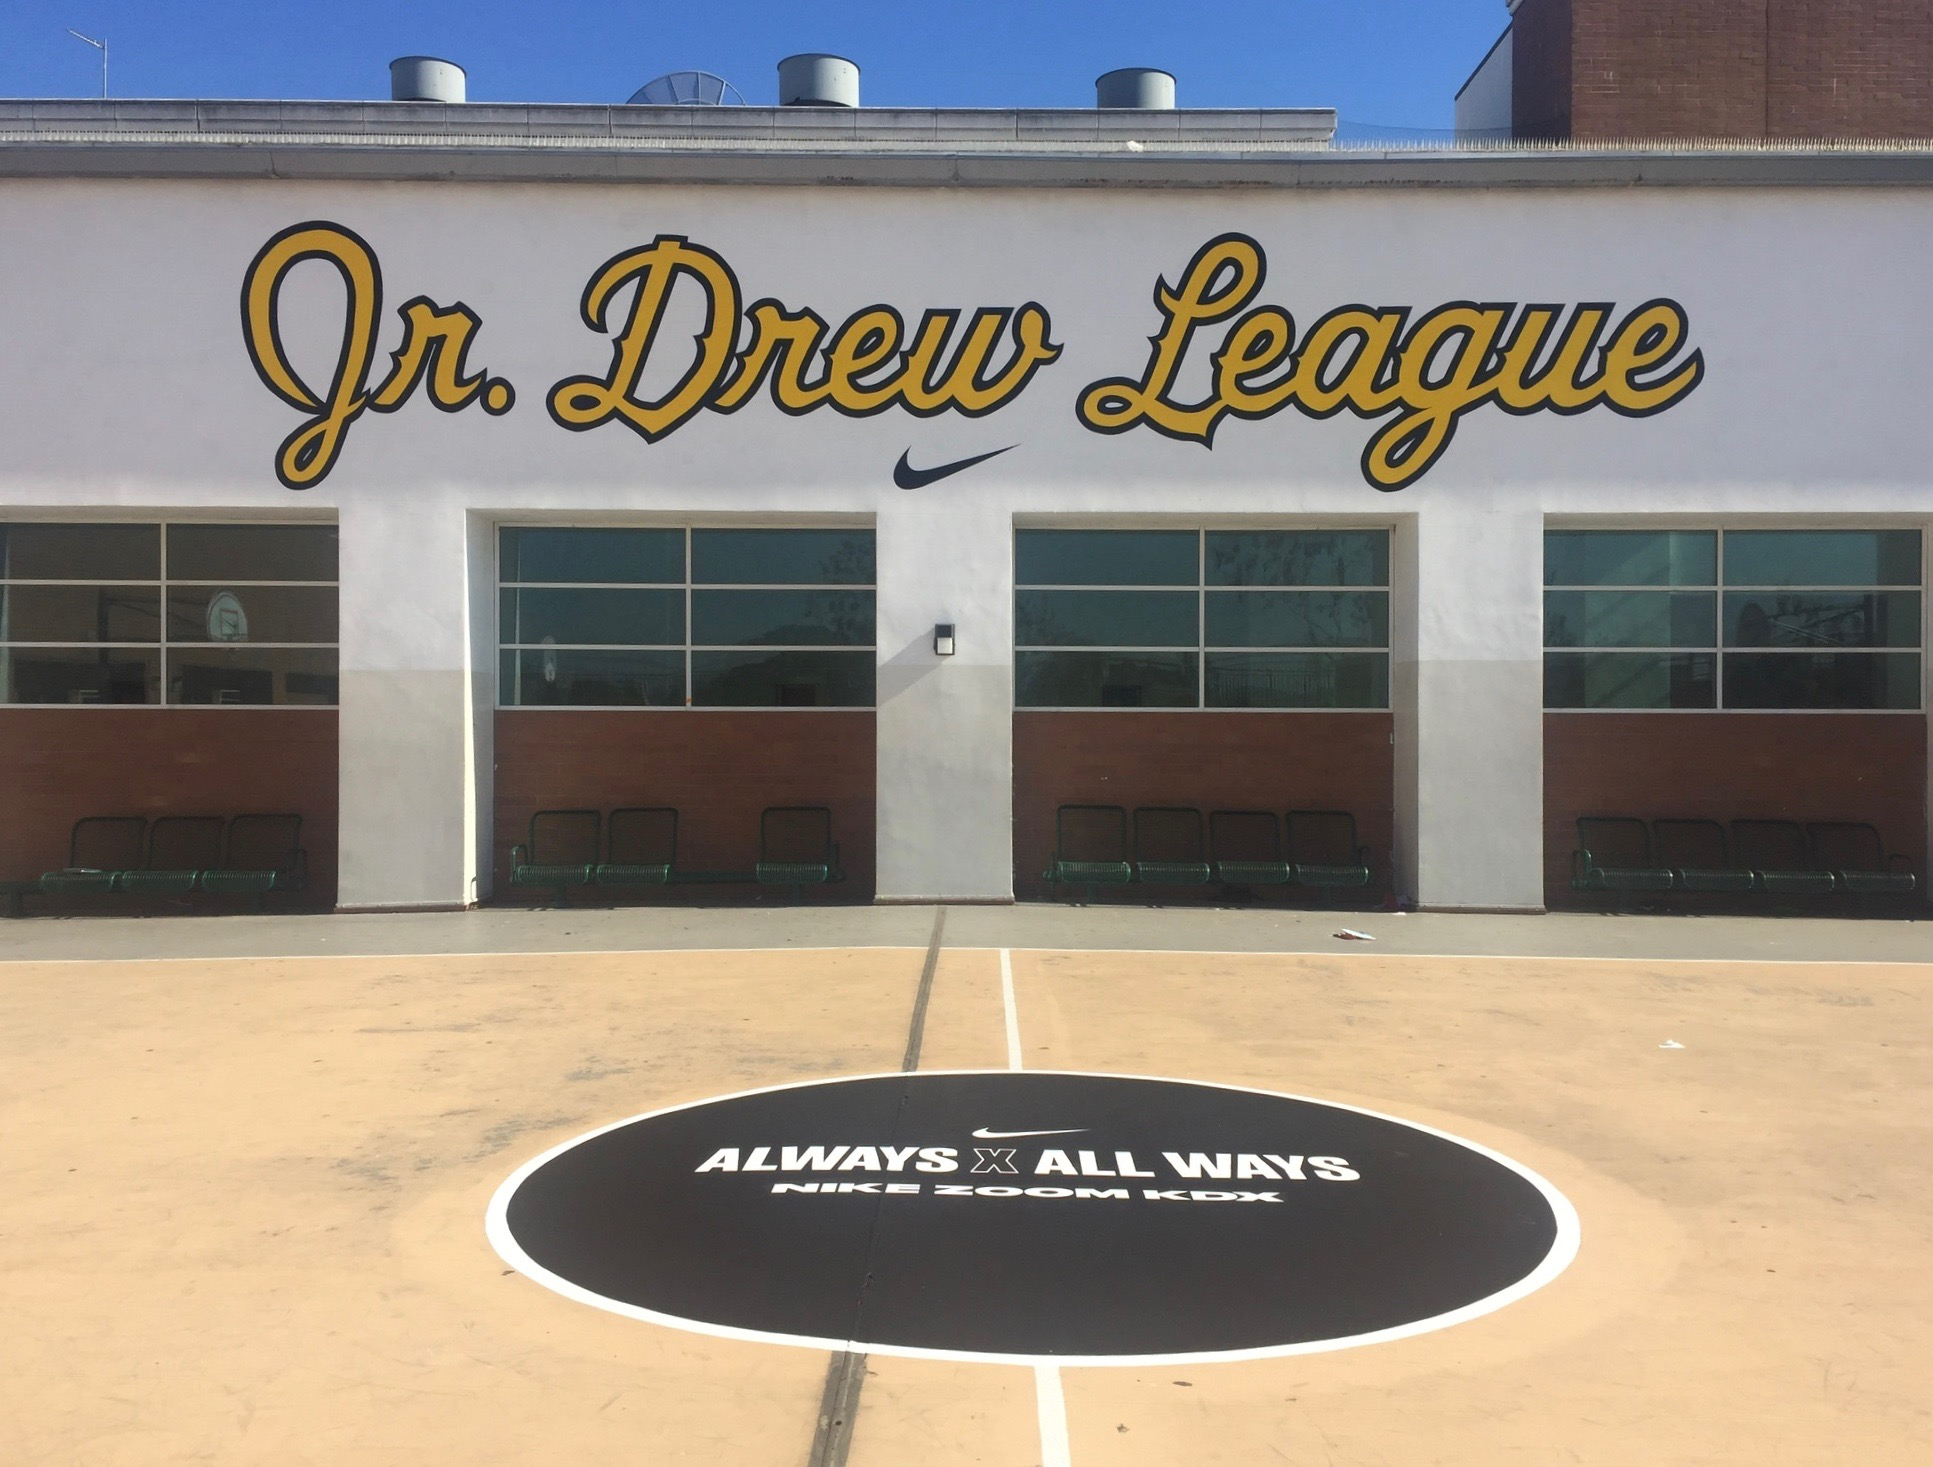 Mural - Jr. Drew League (2017)